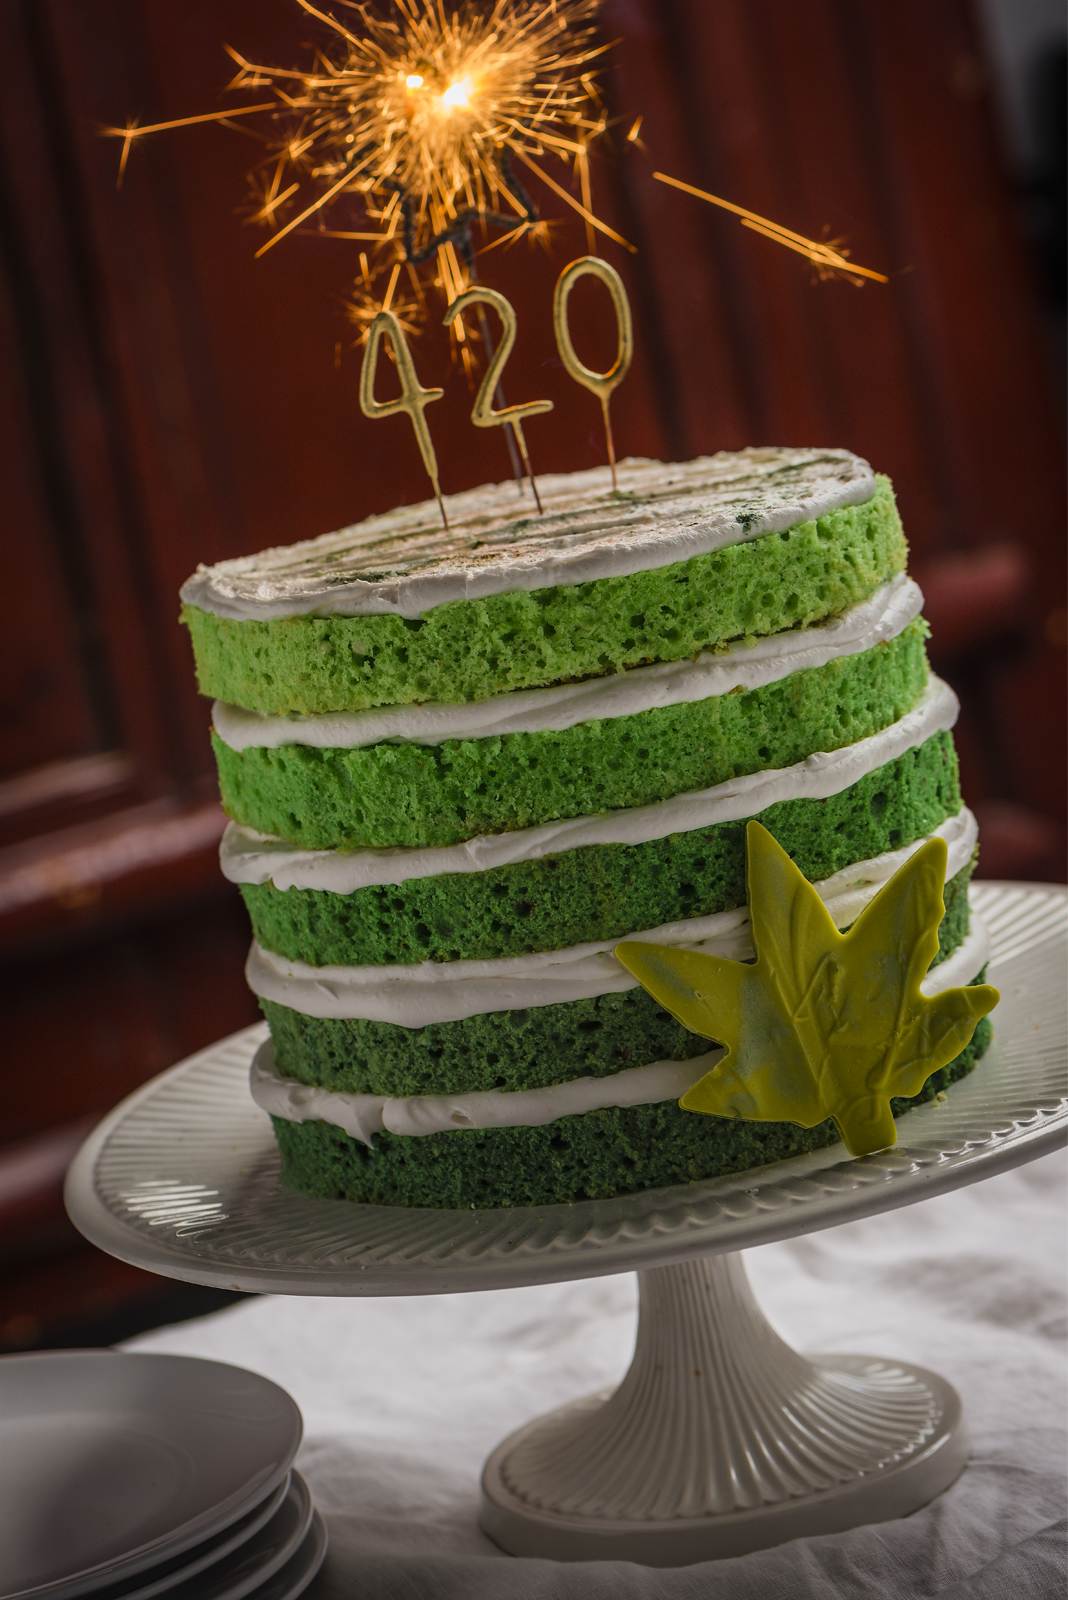 4/20 Five-Layer Green Velvet Cake Recipe - April 13, 2018